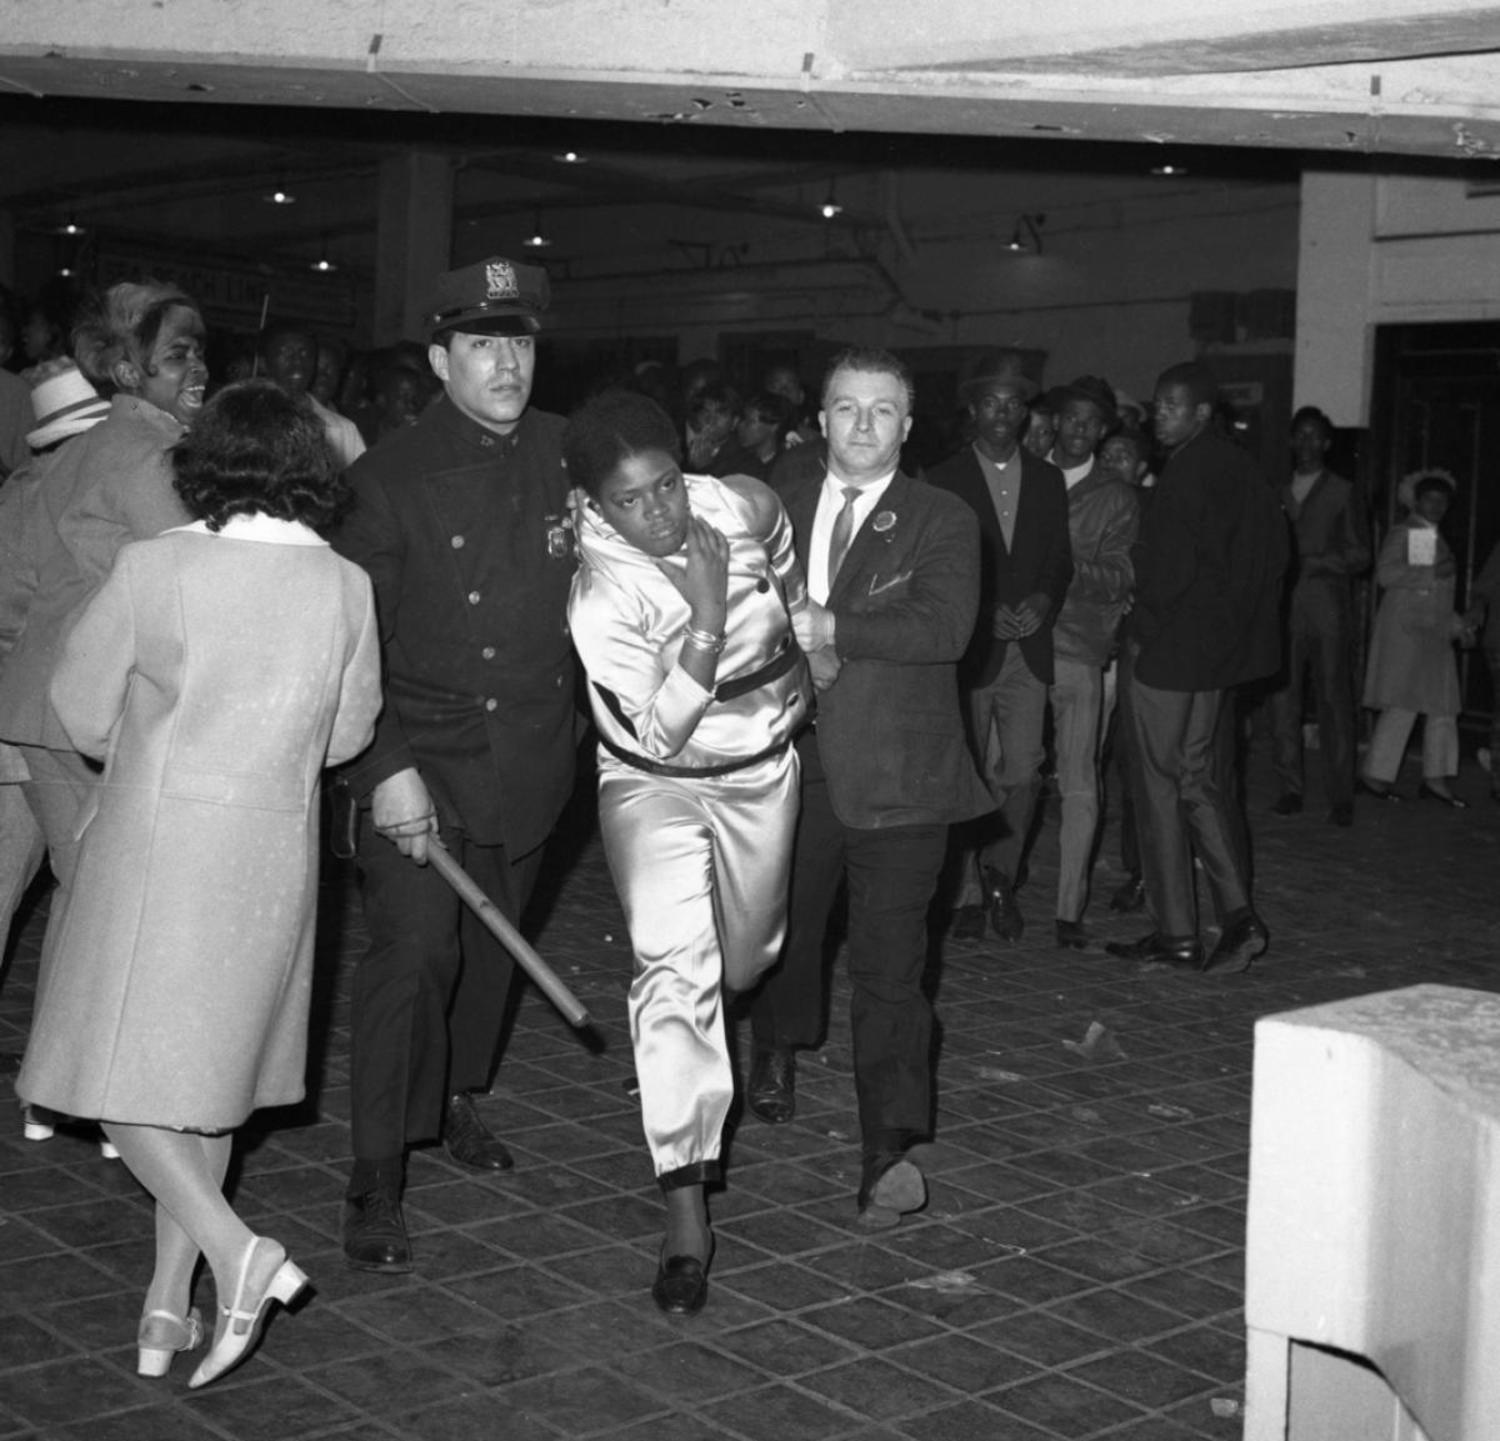 1960's: Police officers escort a member of a mob of disorderly youths away from the subway station at Stillwell Avenue in Coney Island.